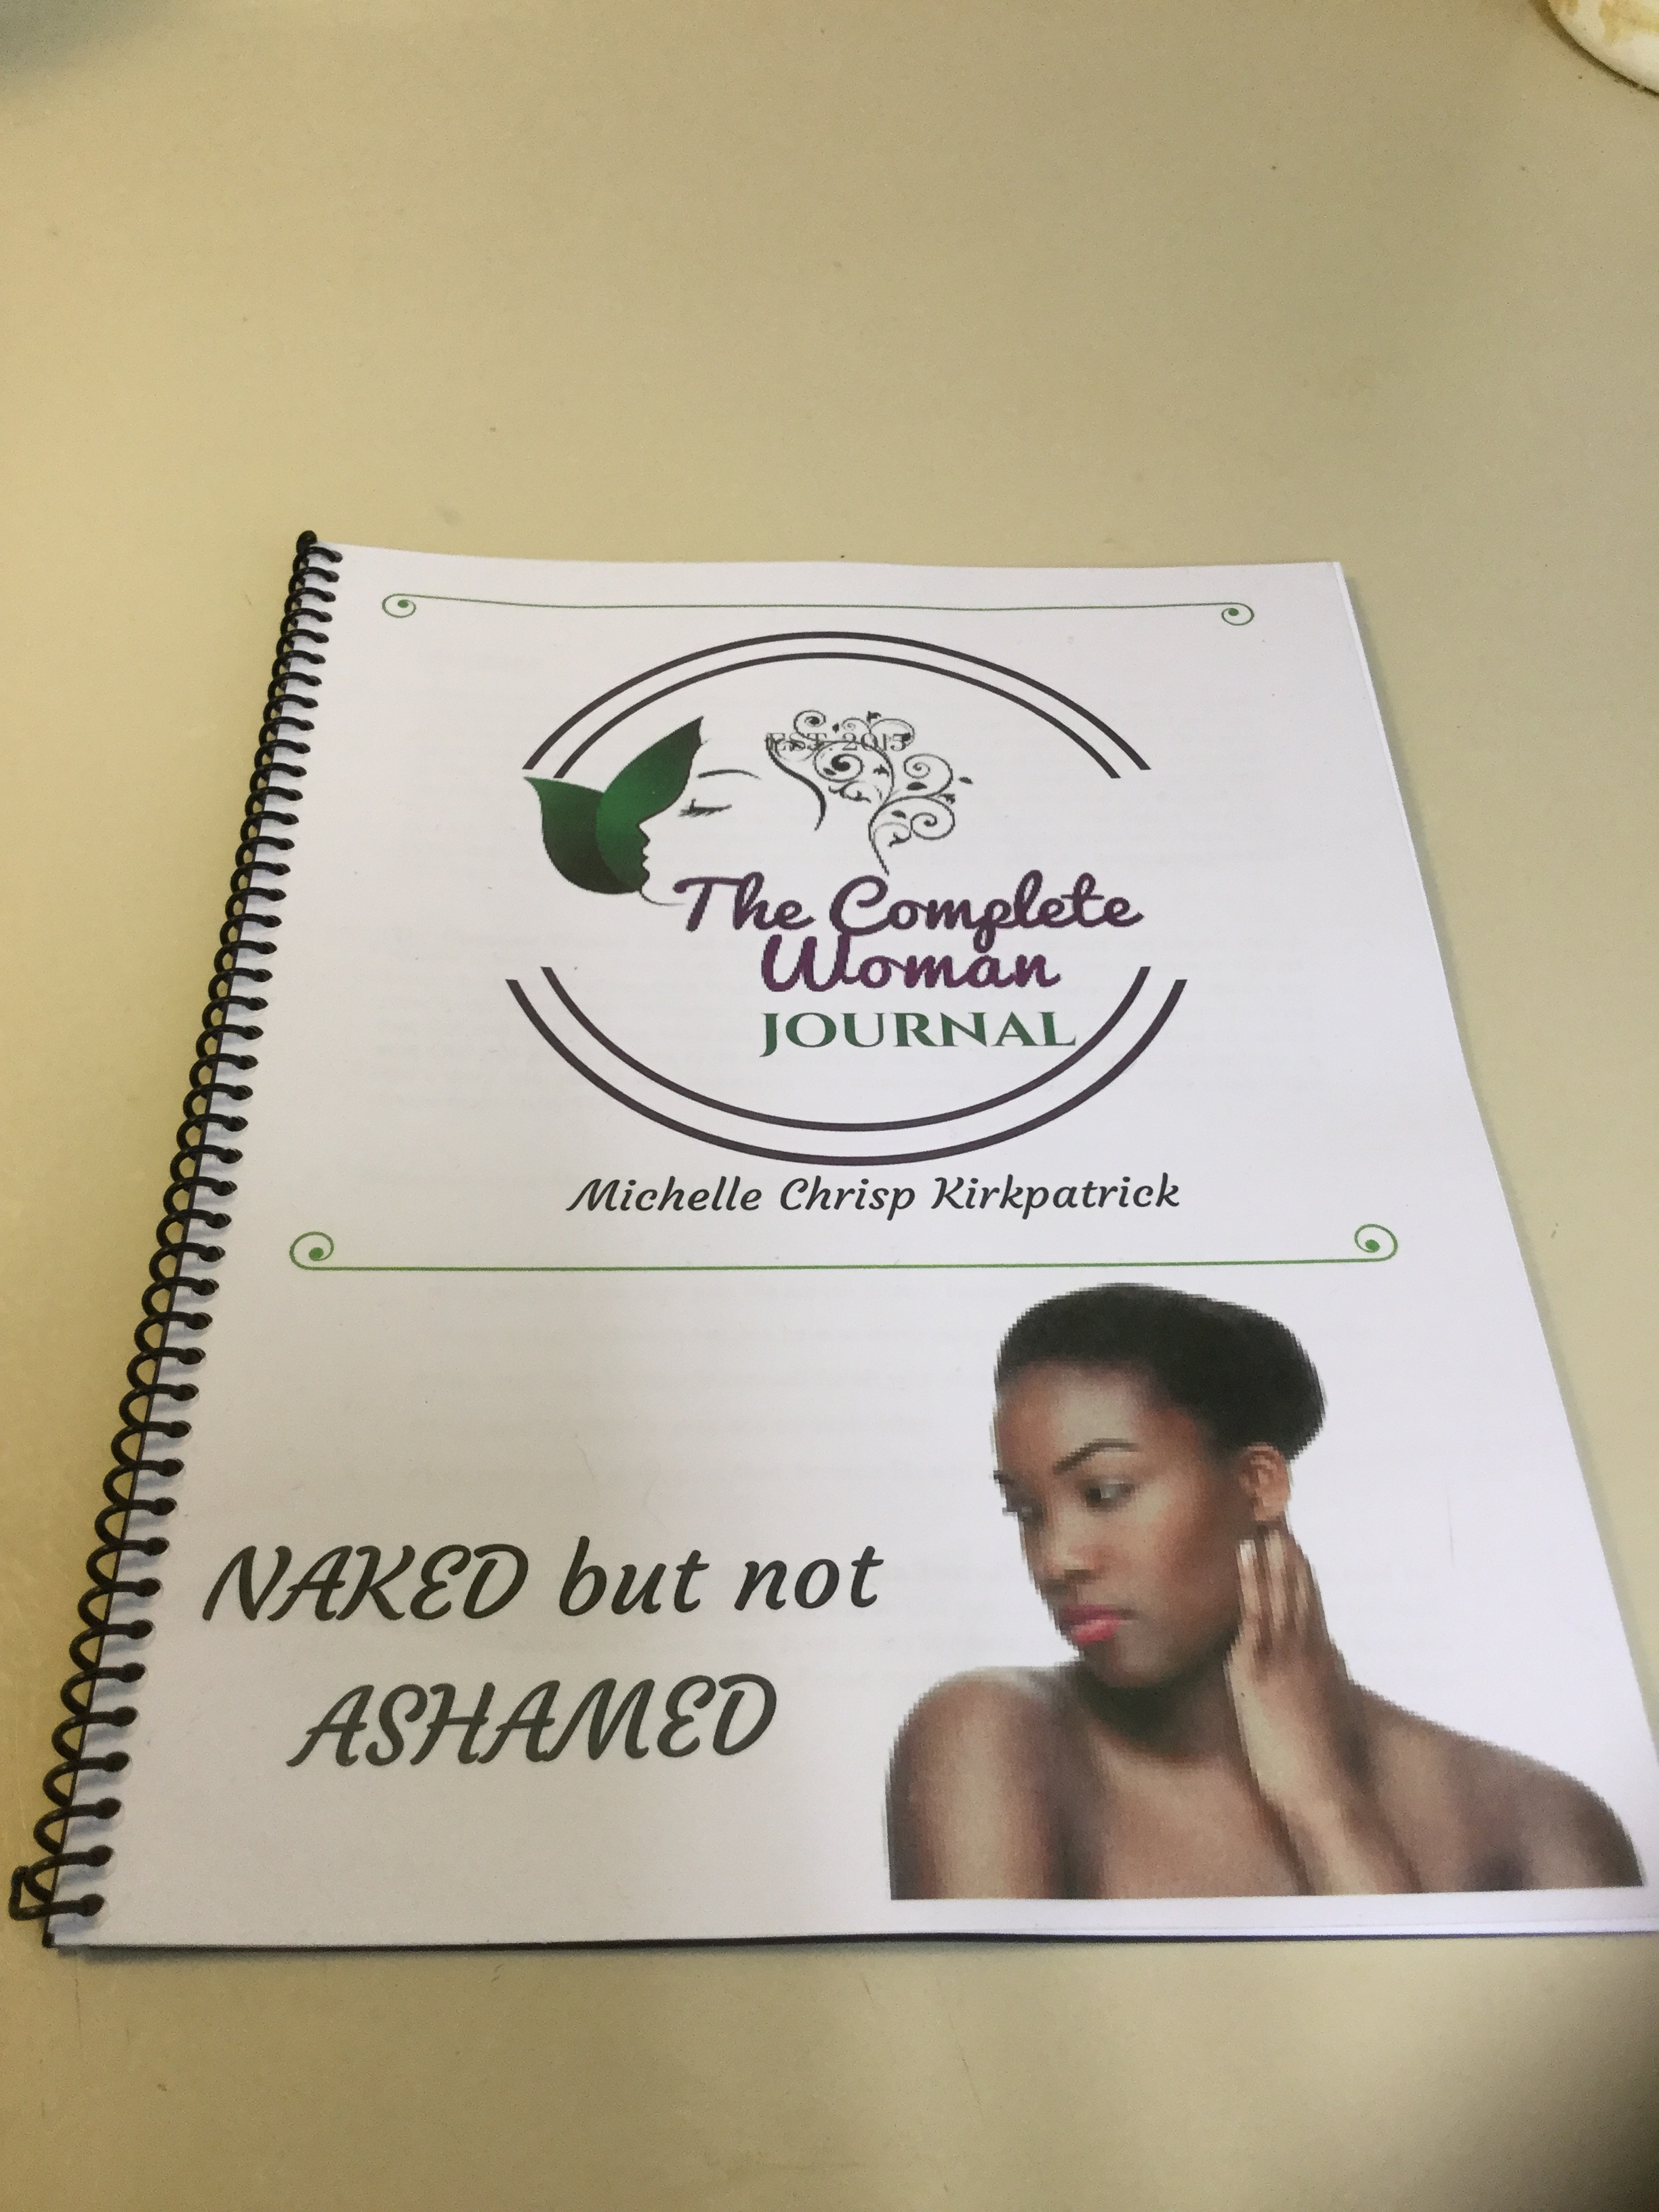 The Complete Woman Journal